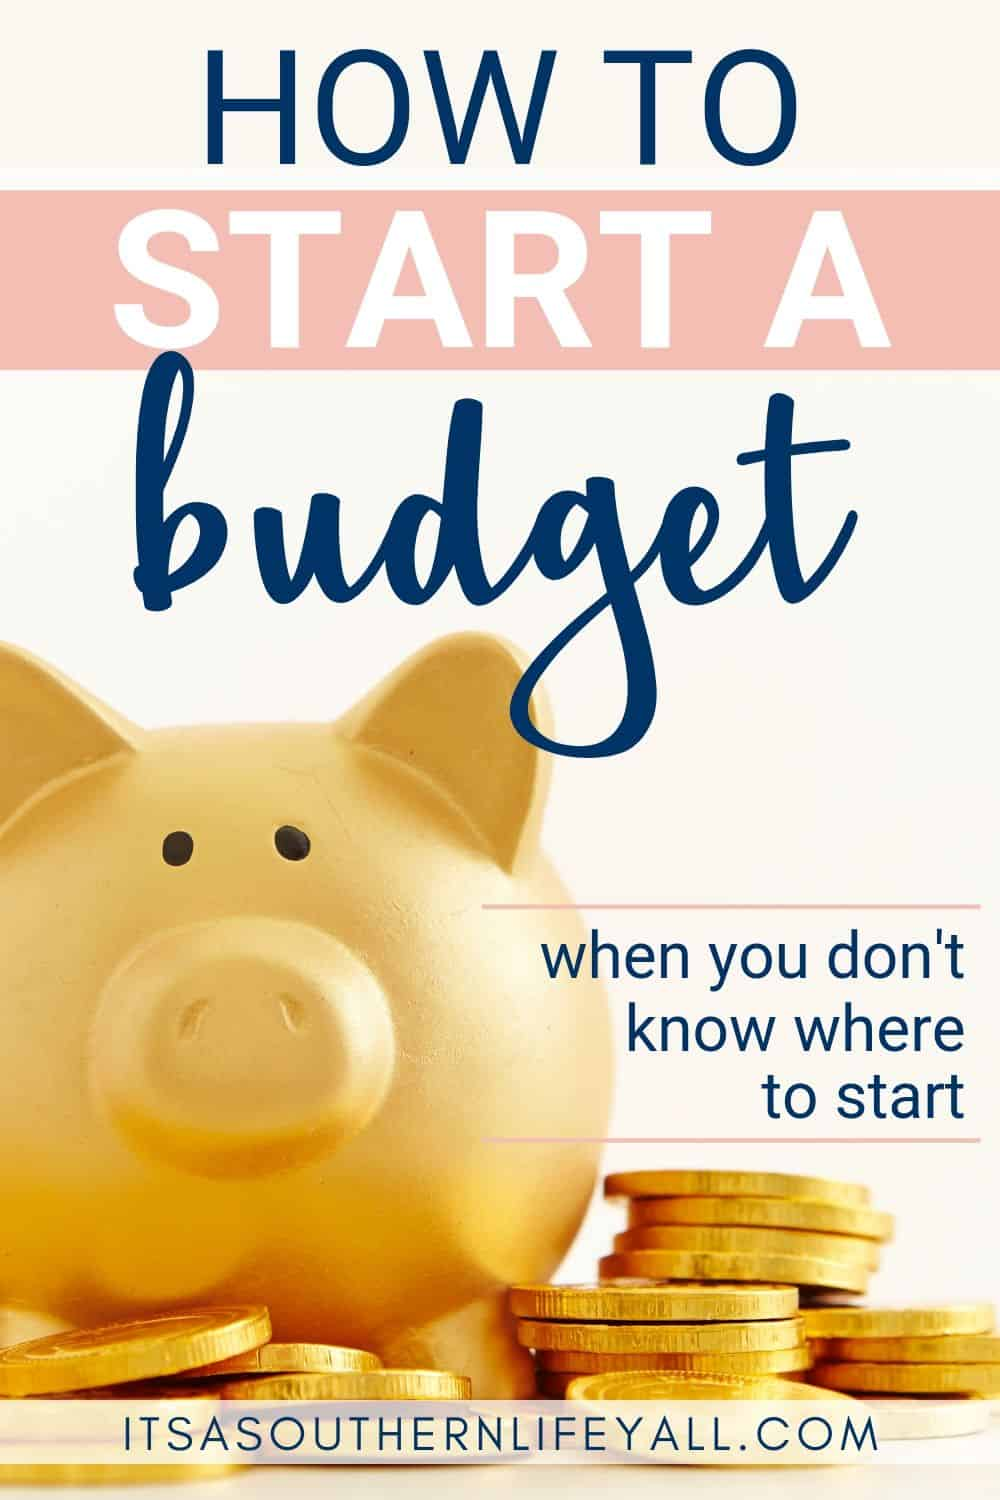 Golden piggy bank with gold coins with How to start a budget when you don't know where to start text overlay.